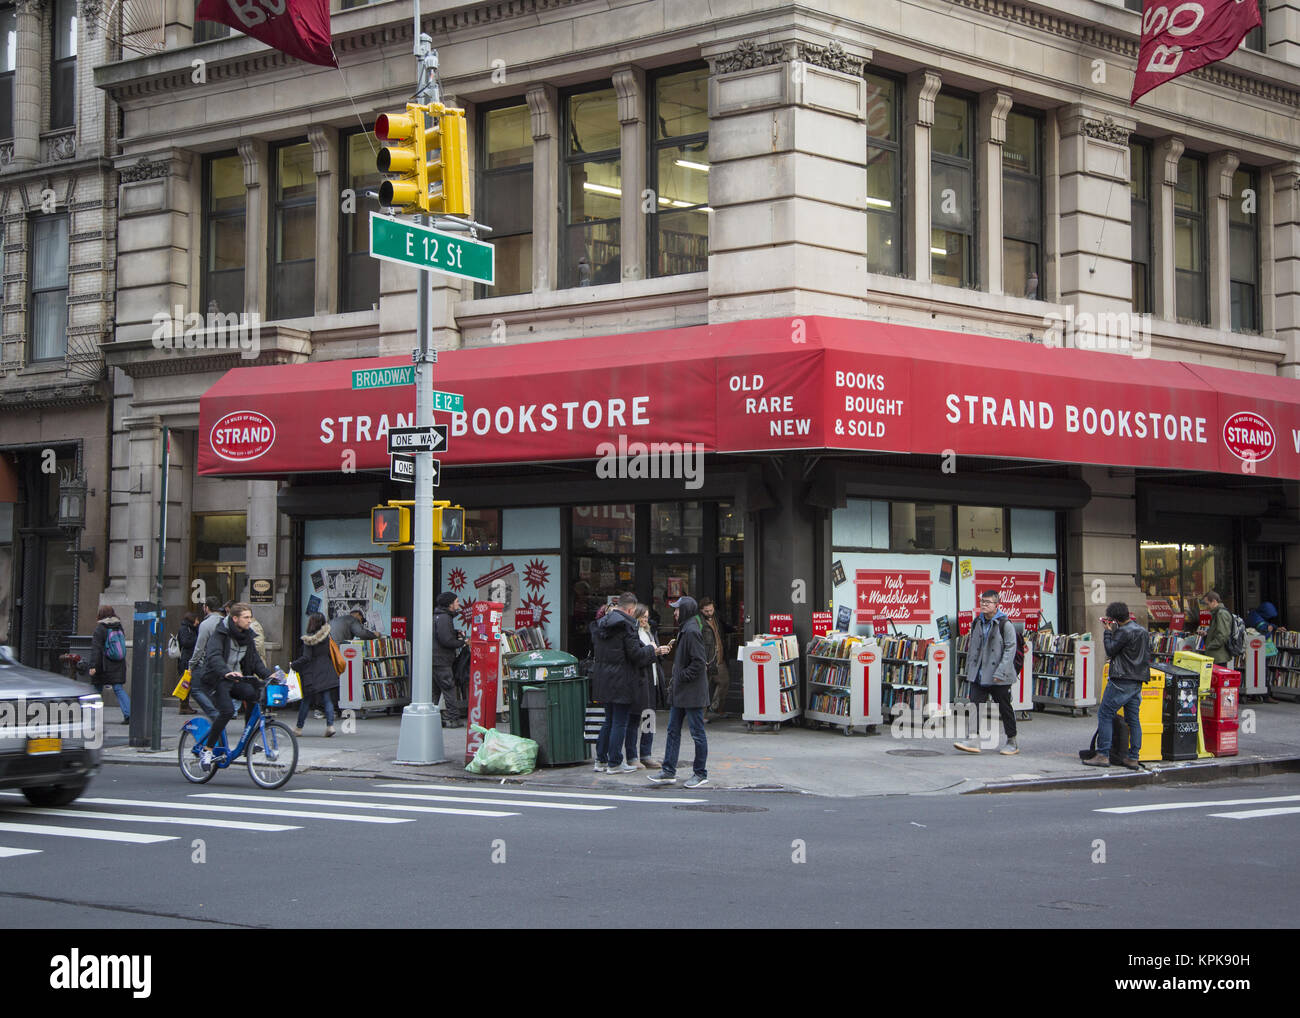 The famous Strand Bookstore at the corner of 12th Street and Broadway in New York City. - Stock Image